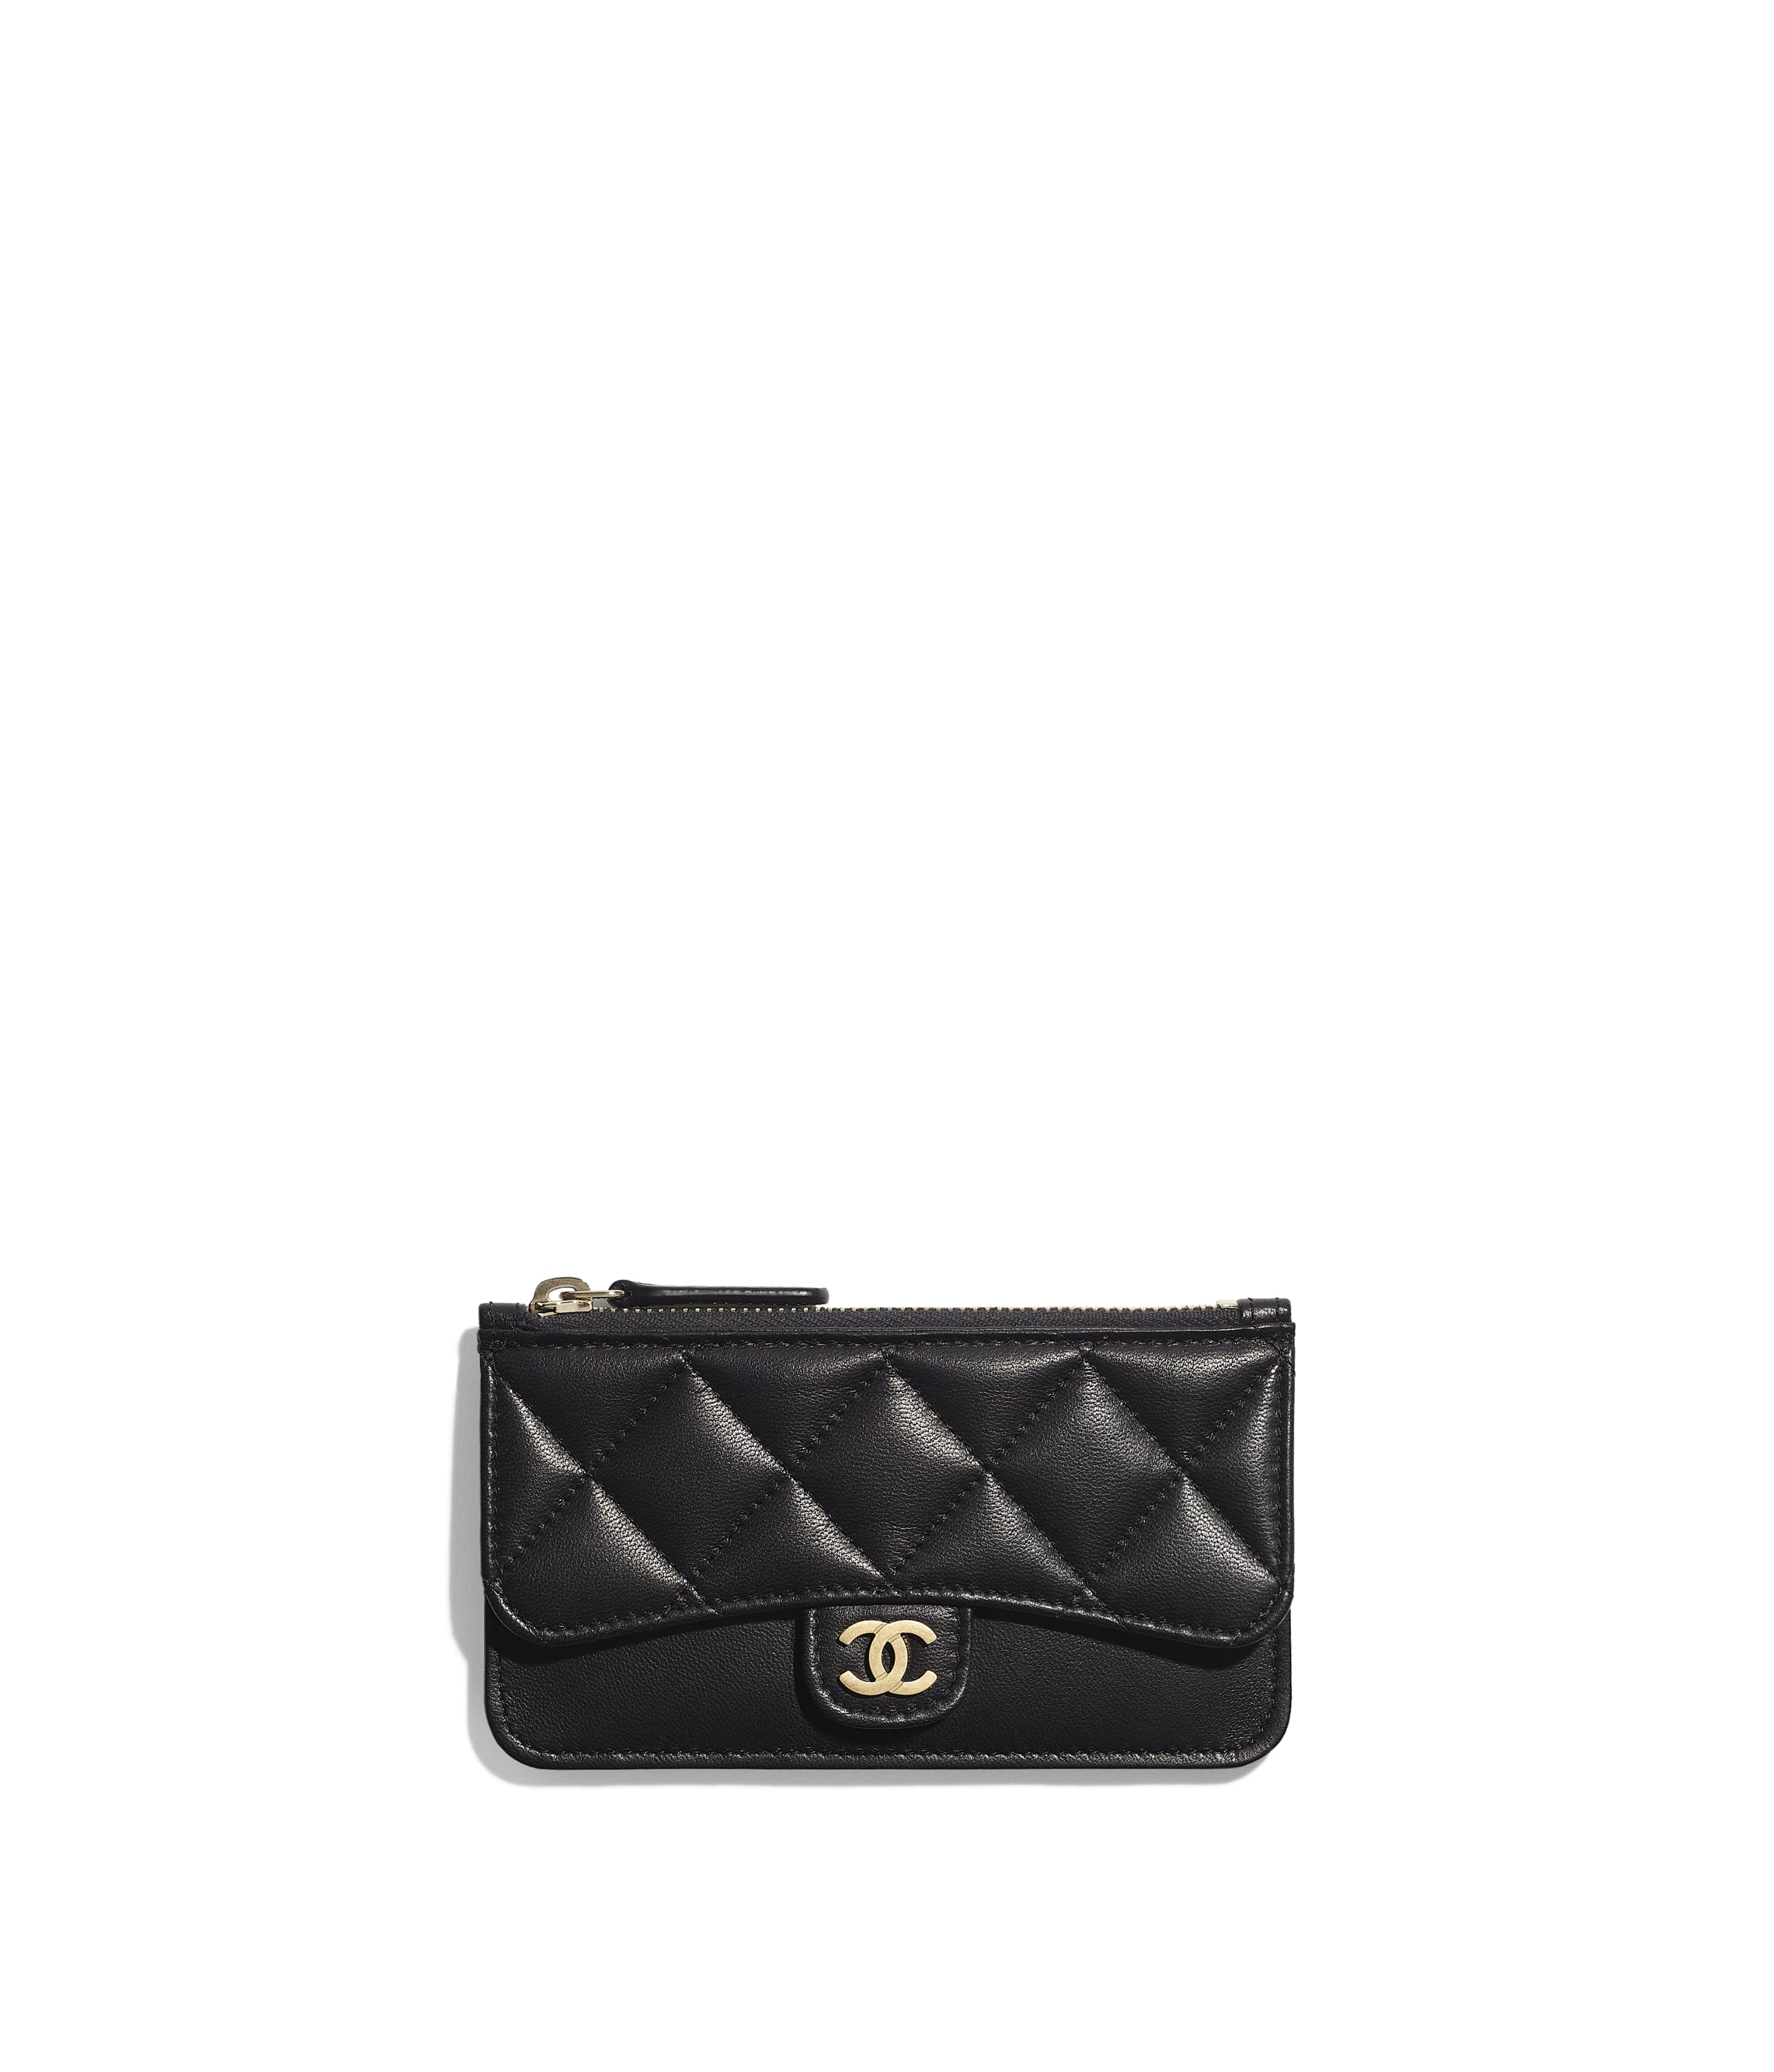 60bce4ee2100a1 Card Holders - Small Leather Goods - CHANEL